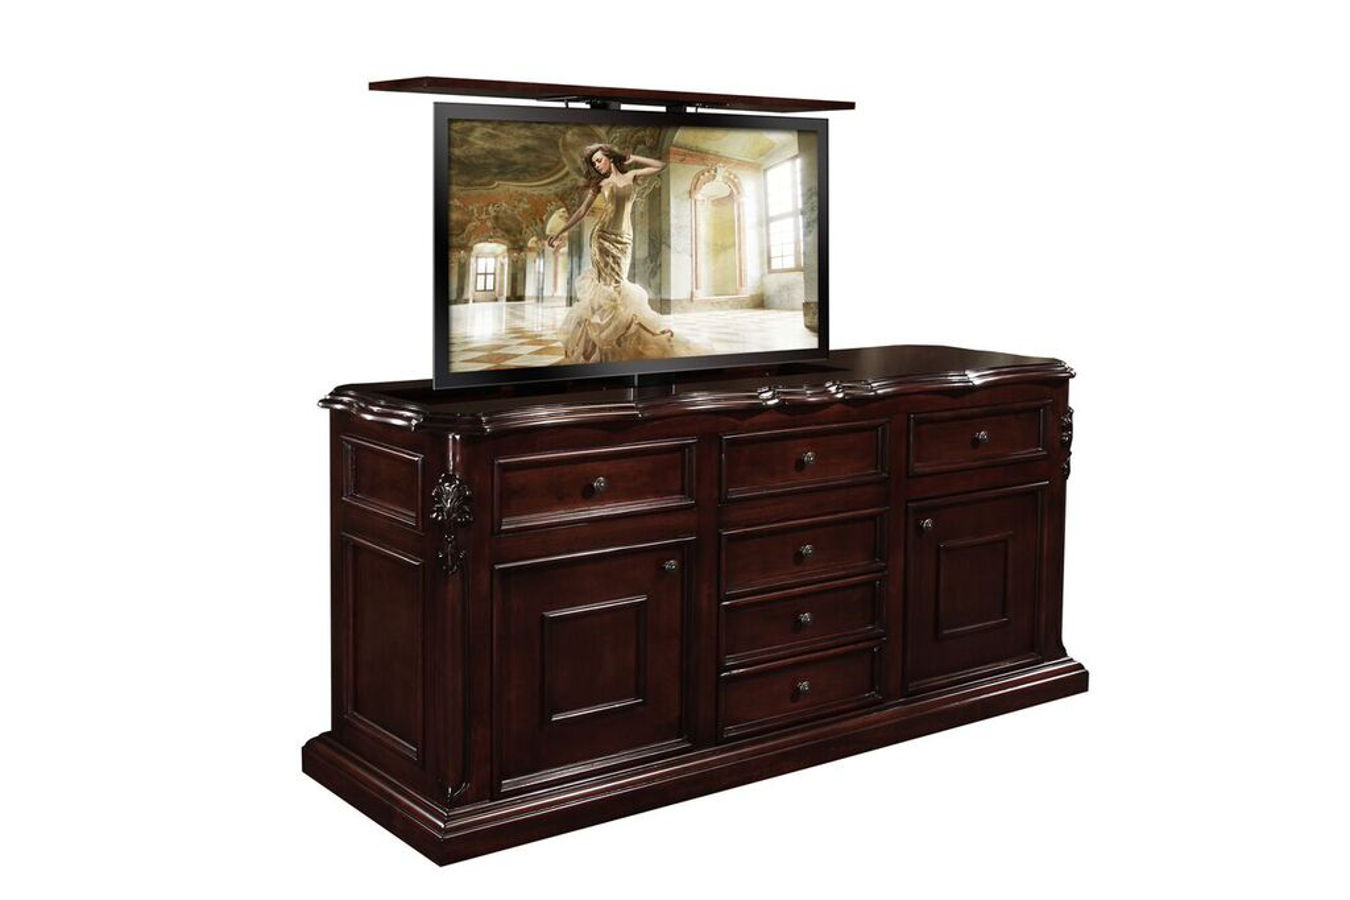 Scarlet Flat Screen TV Lift Furniture